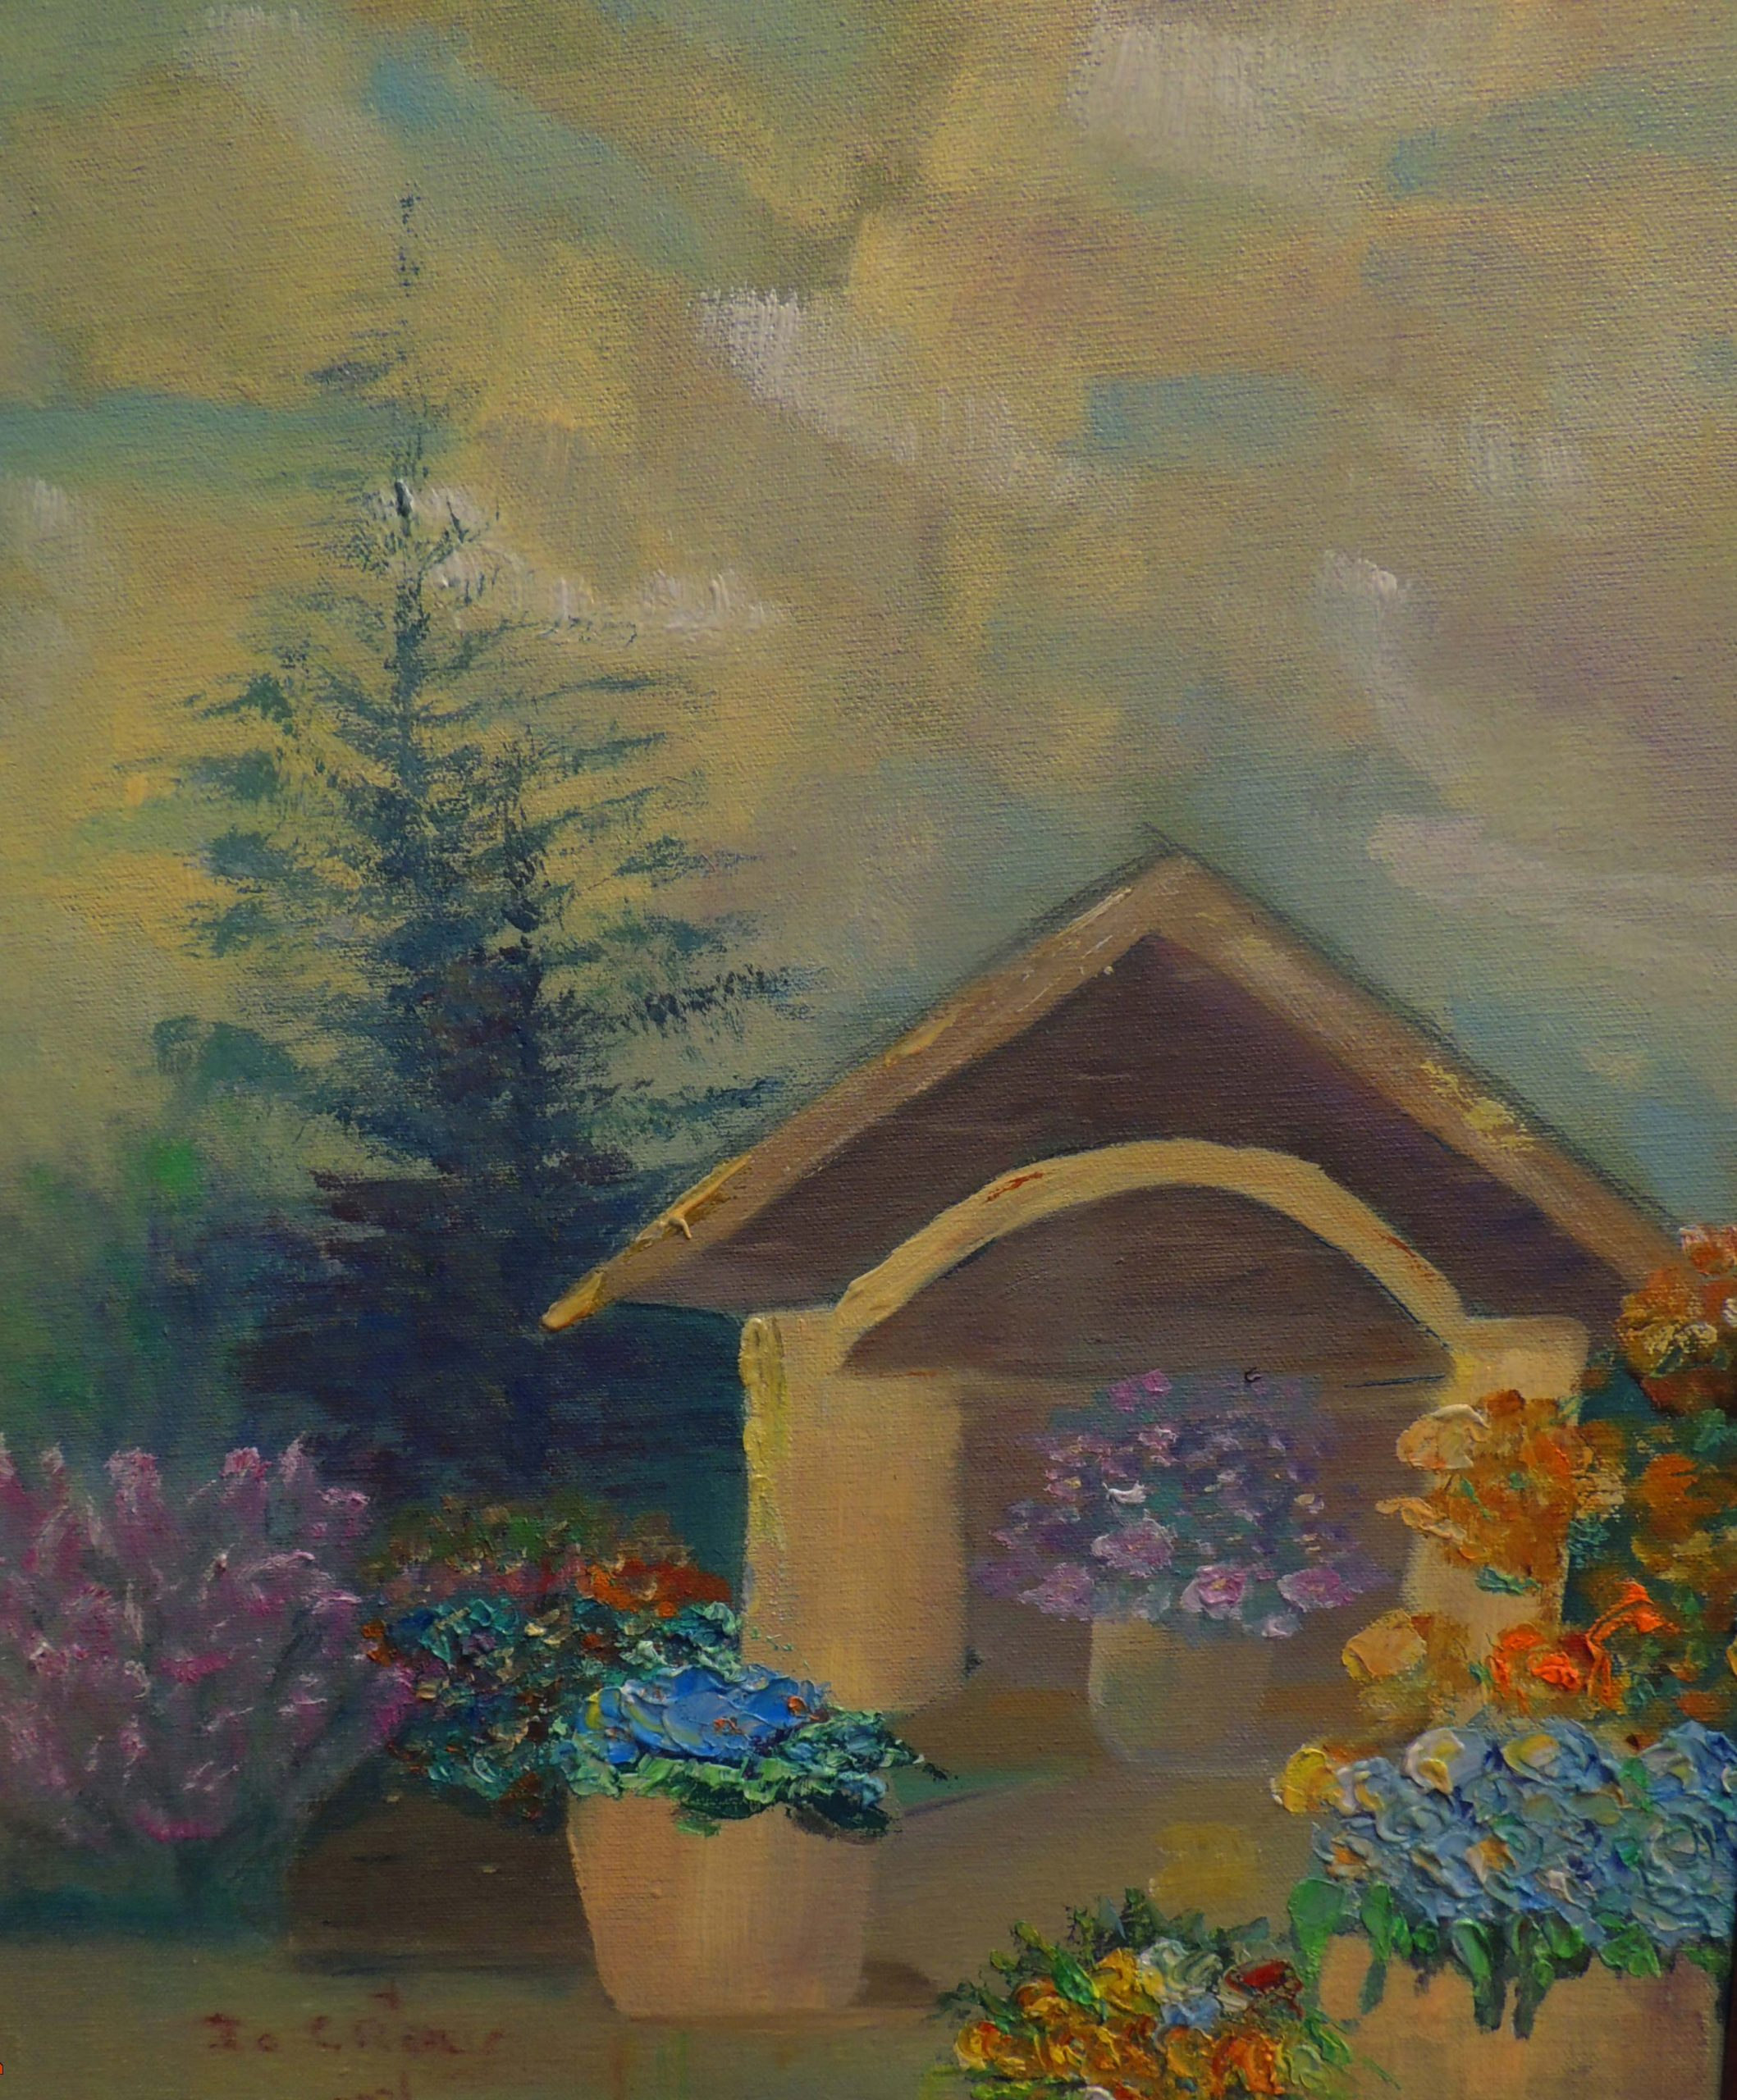 1517 A CHAPEL FOR FLOWERS